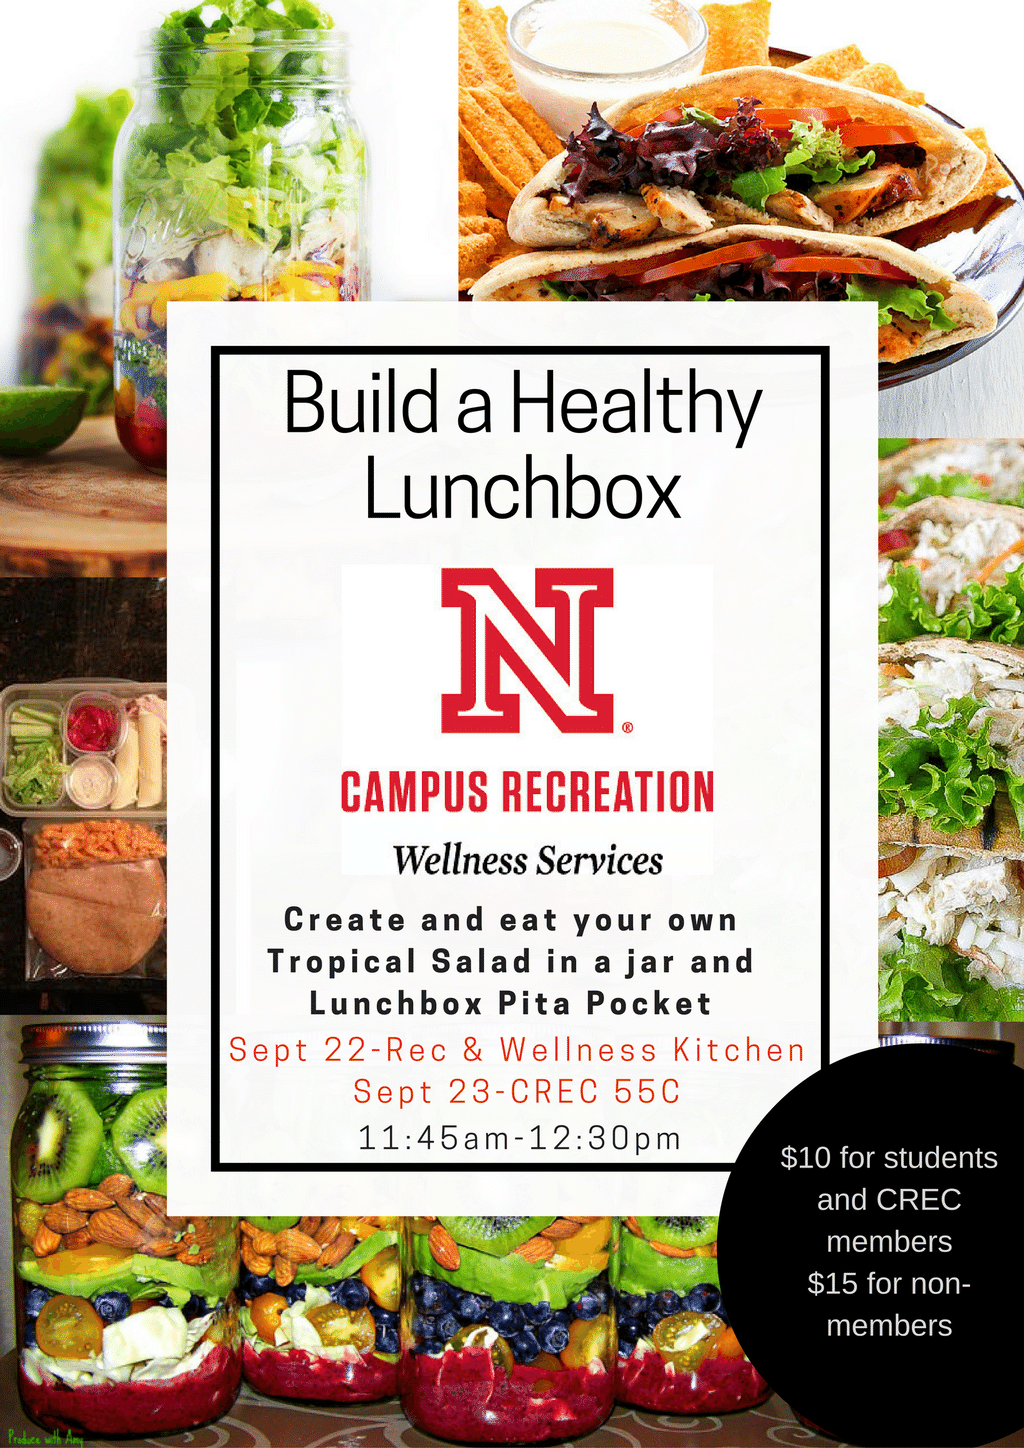 Build a Healthy Lunchbox with Campus Recreation